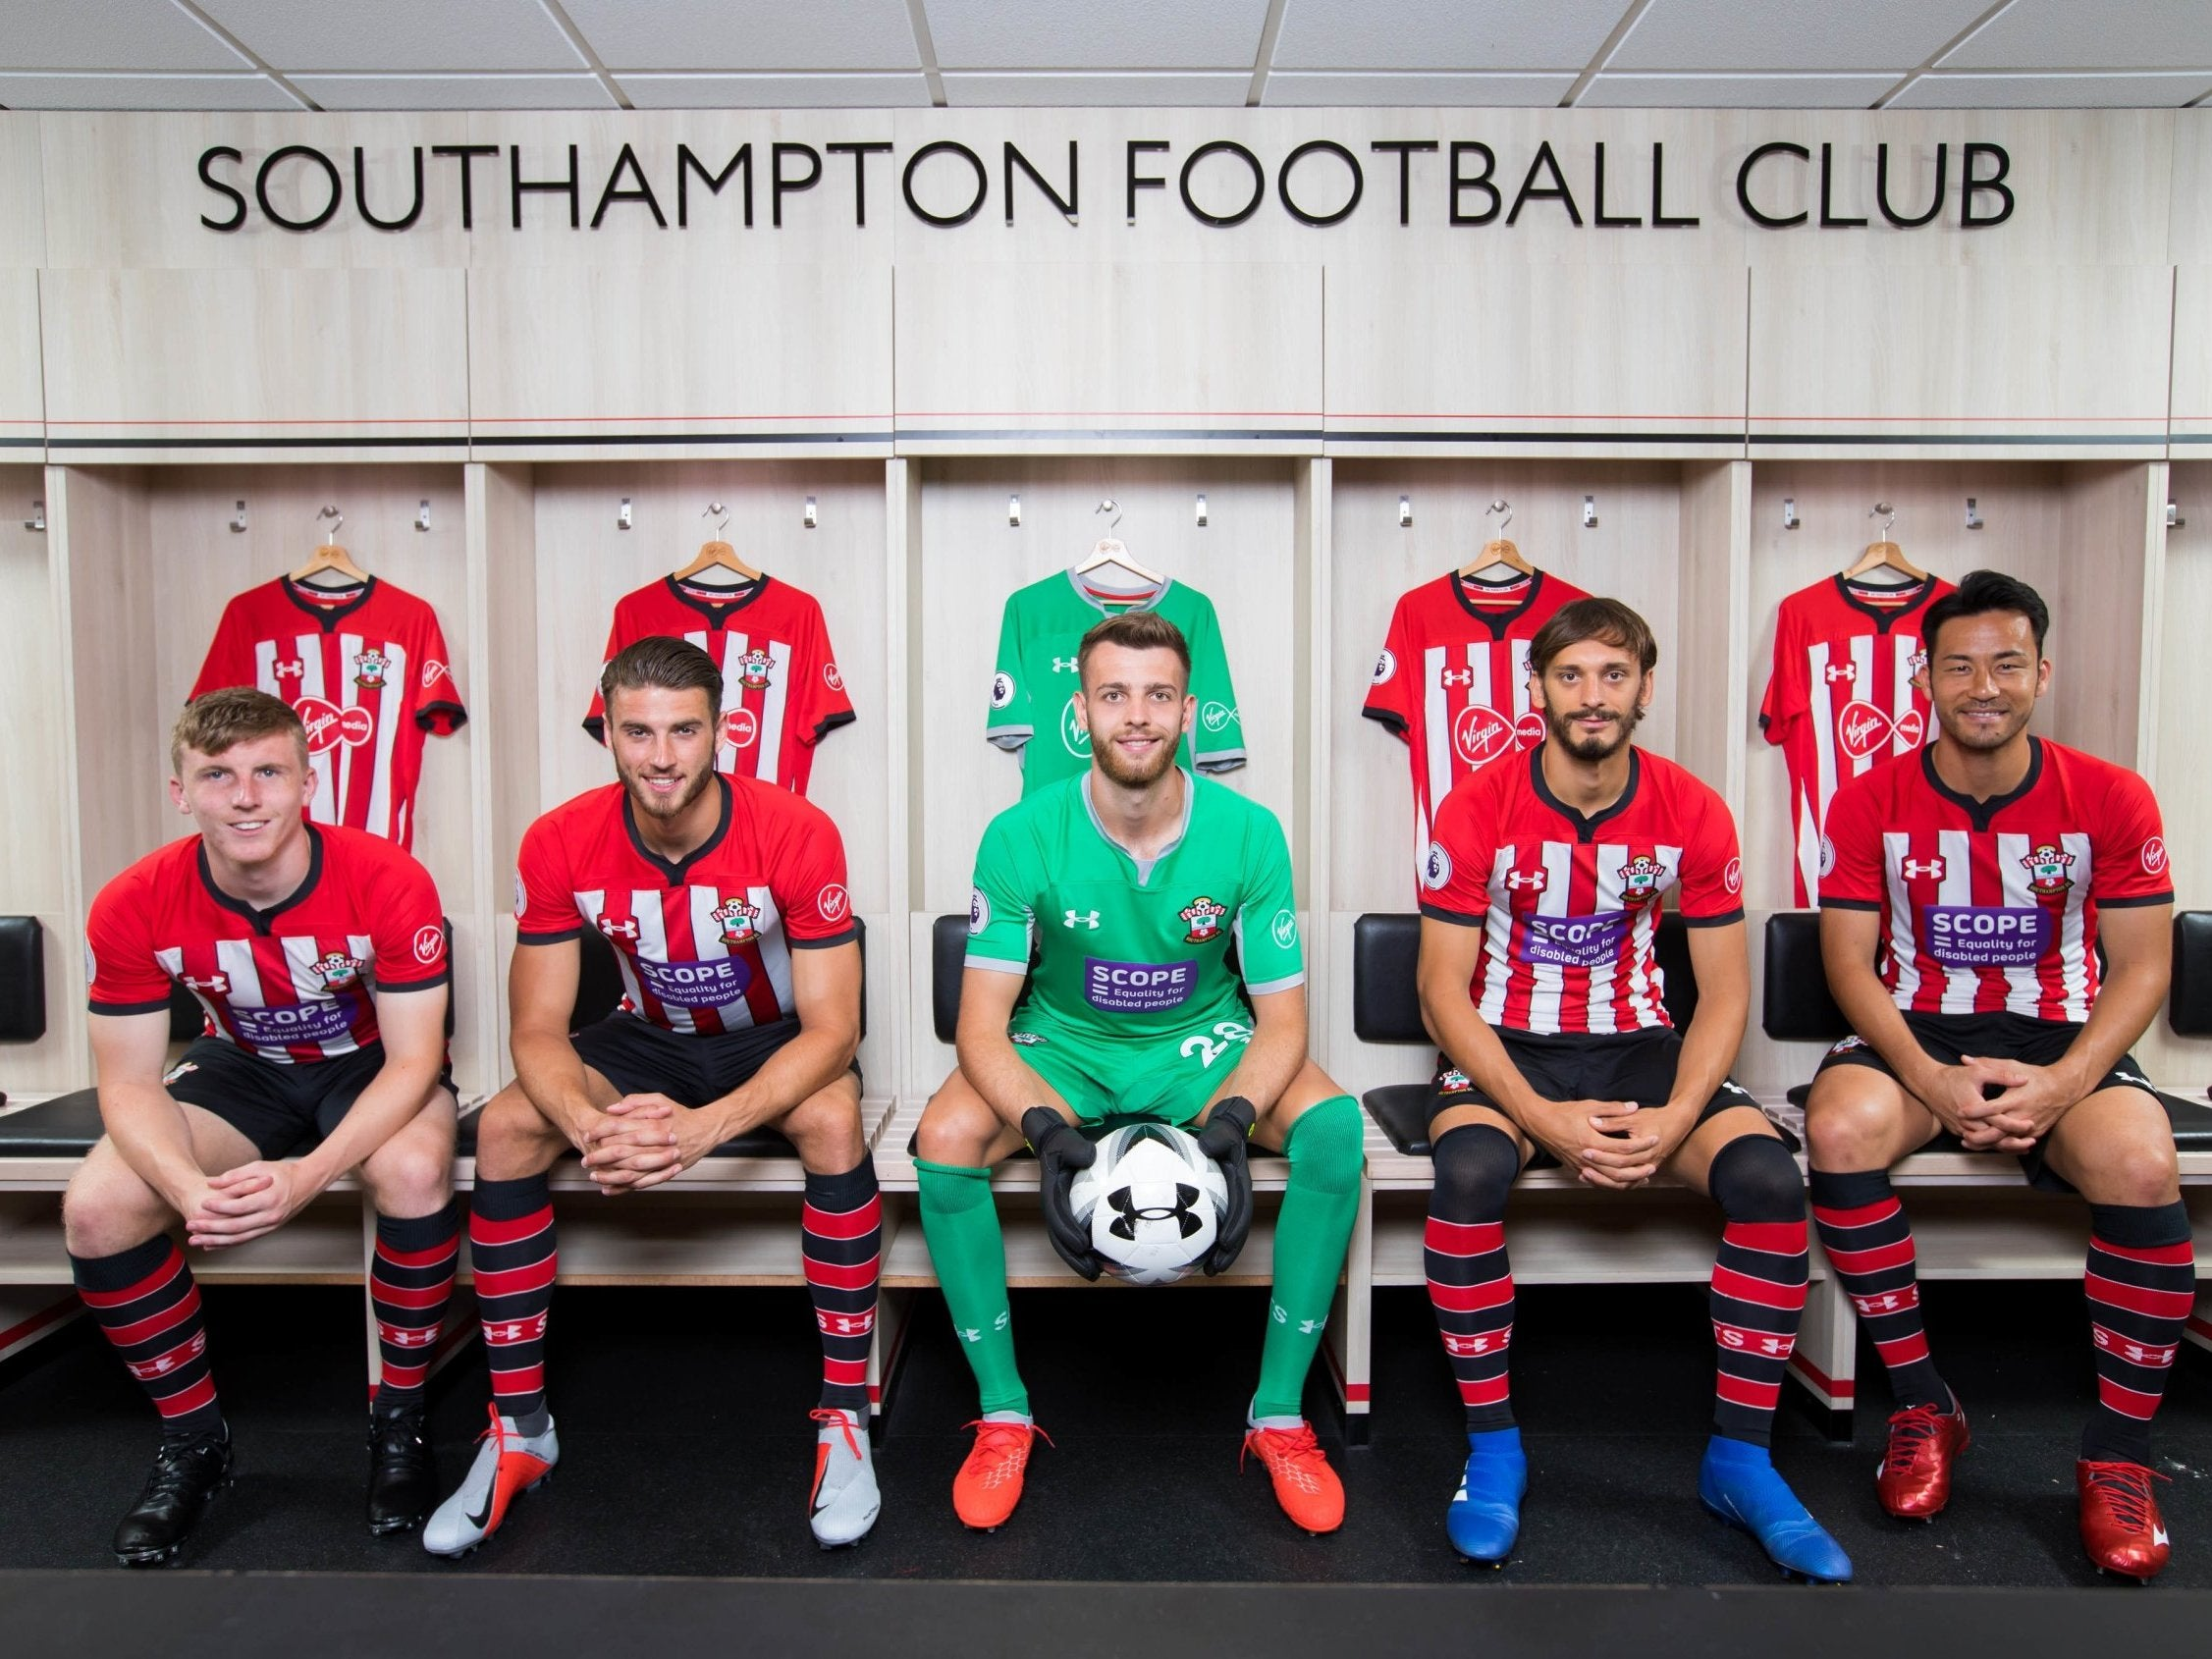 95b00c7e1ce Southampton will swap their Virgin Media sponsorship for the Scope logo to  raise awareness for disability equality (PA)